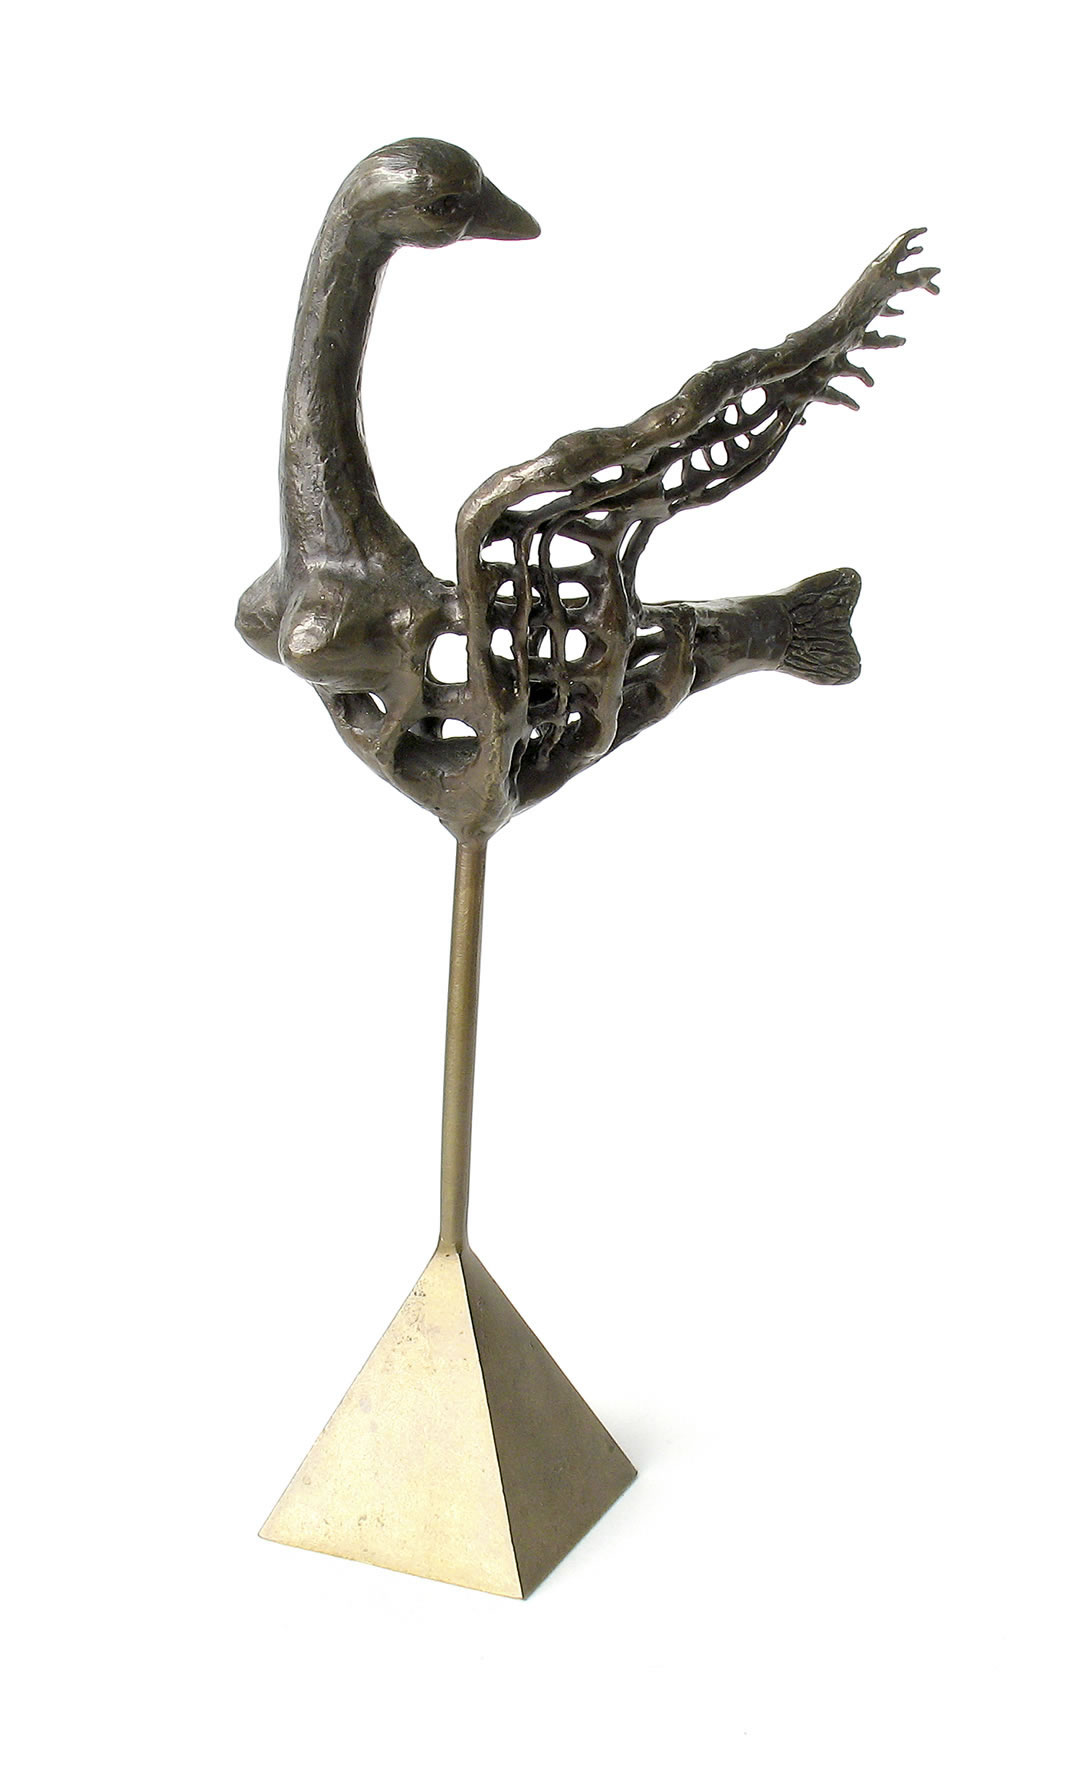 Sculpture de Lucienne Cornet / Bronze patiné / 20 x 10 x 6 cm